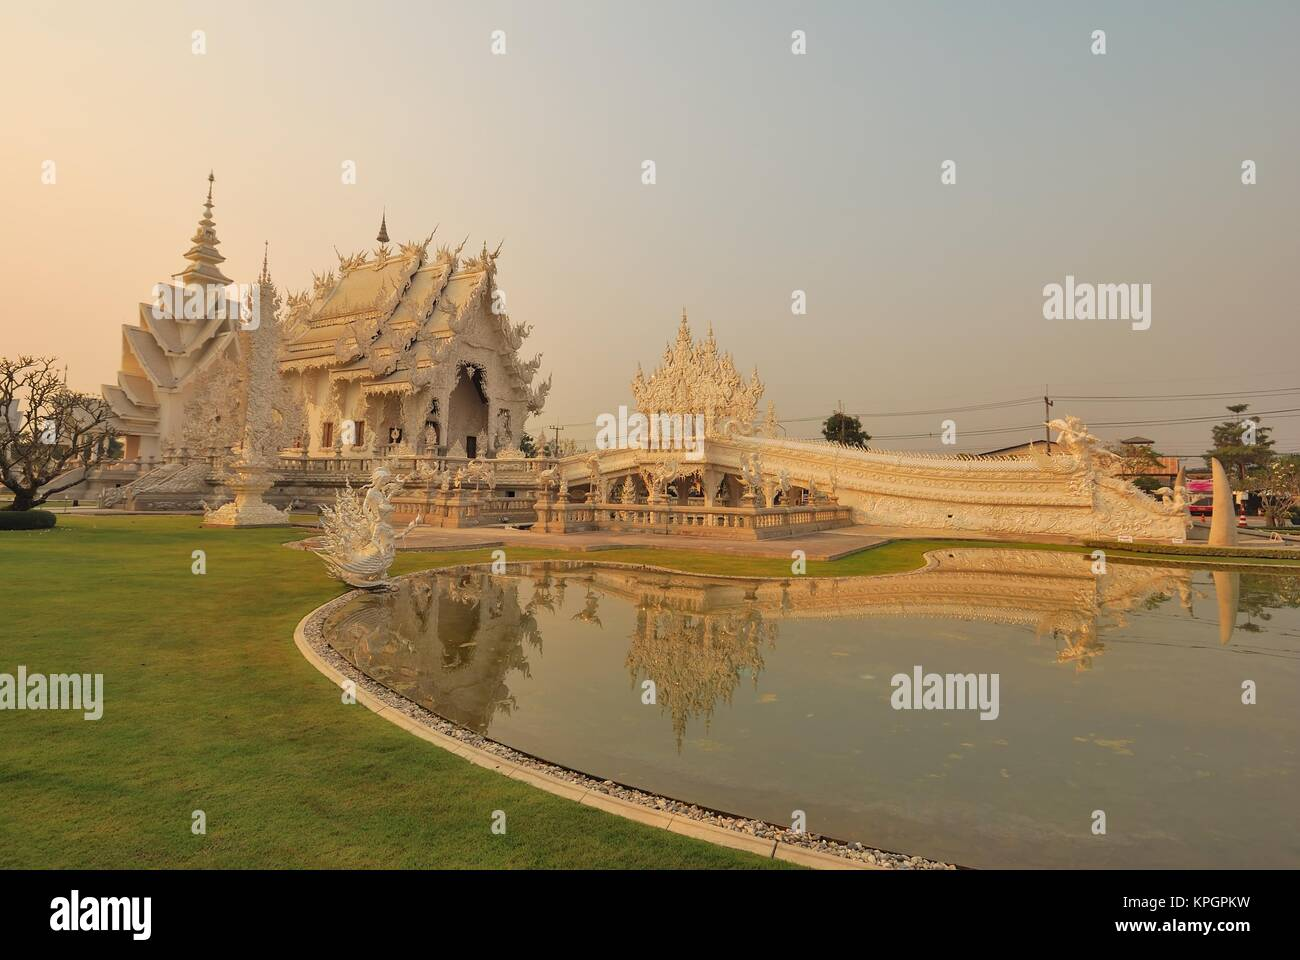 Famous Wat Rong Khun Buddhist and Hindu temple in Chiang Rai, Thailand. Stock Photo